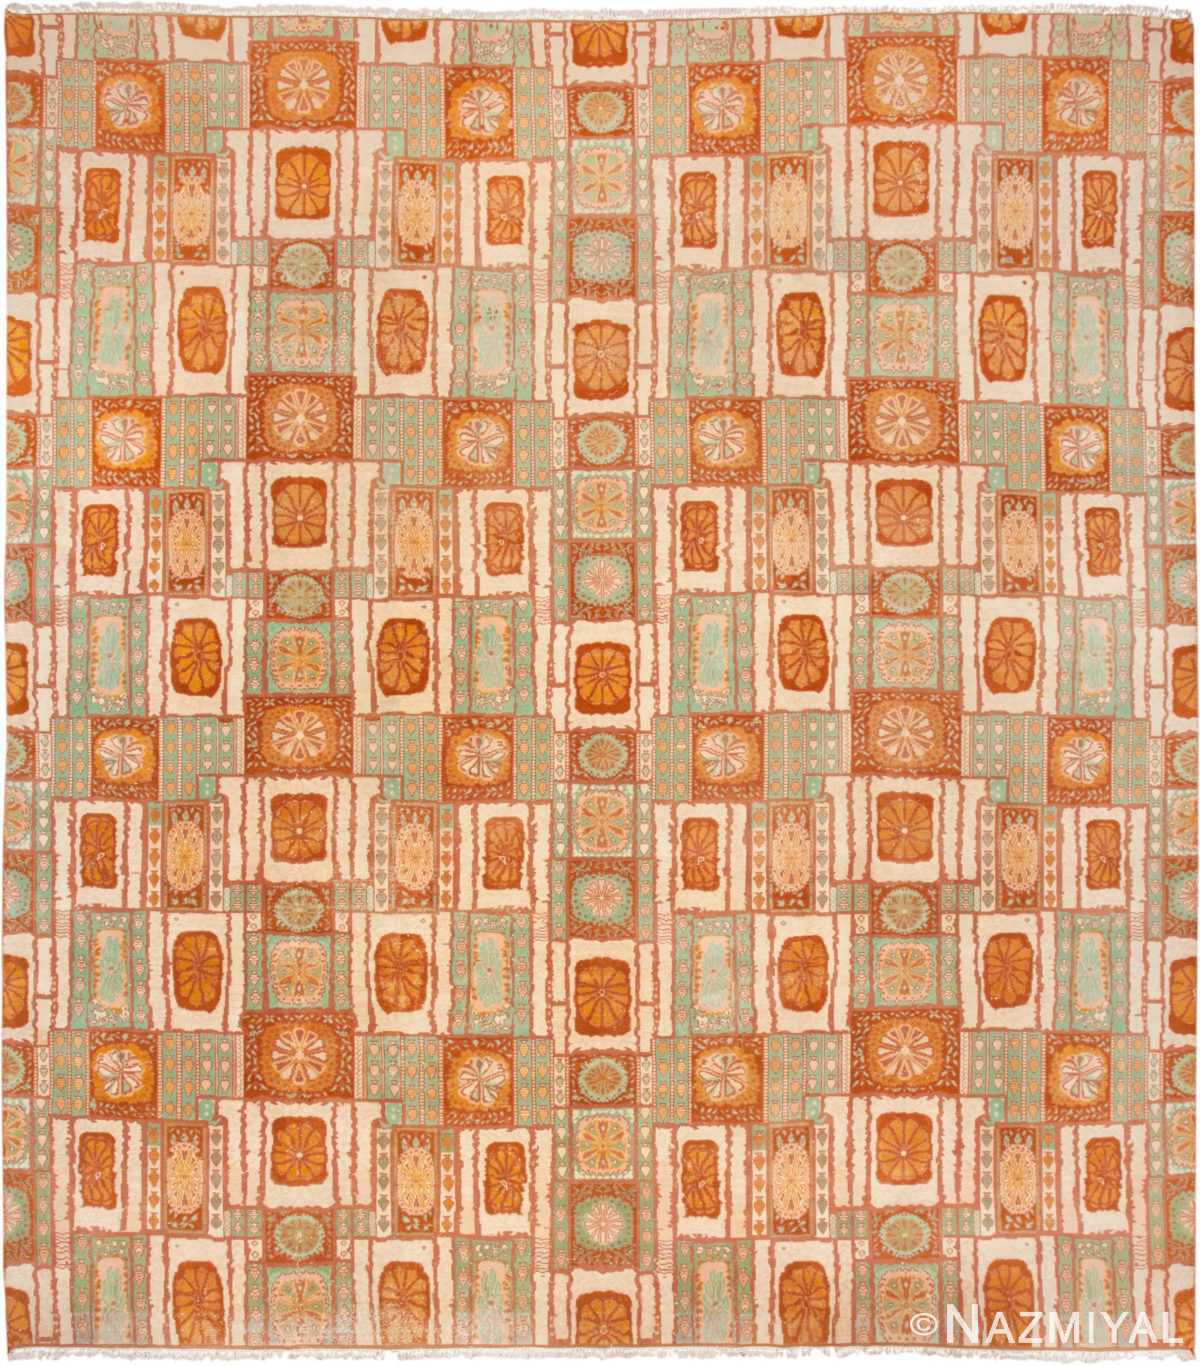 Indian Arts and Crafts Rug | 45072 Hires